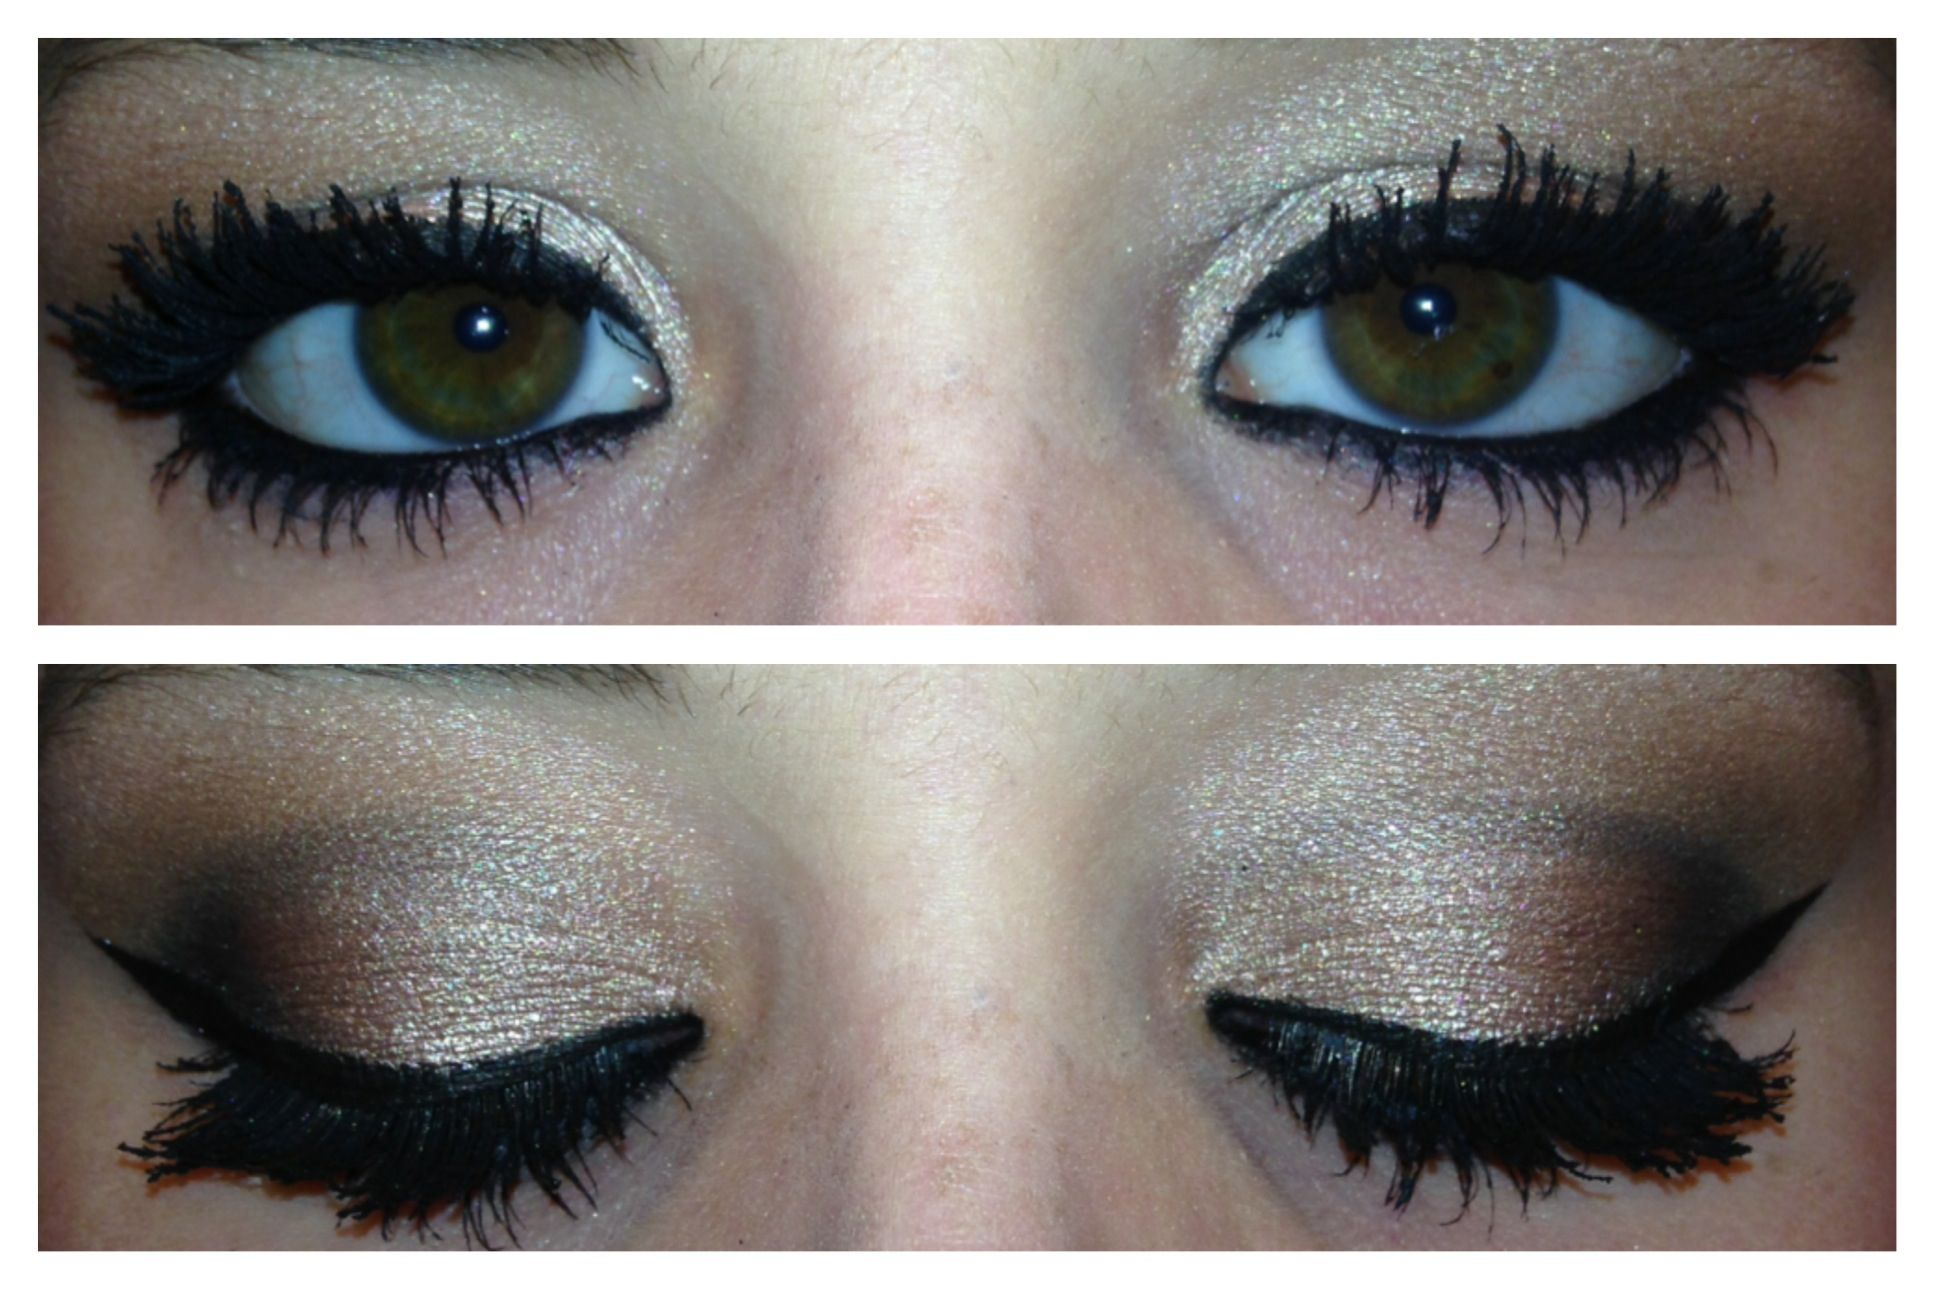 b9f0e001b0d No Falsies needed(; the key is Maybelline Colossal mascara<3 ...